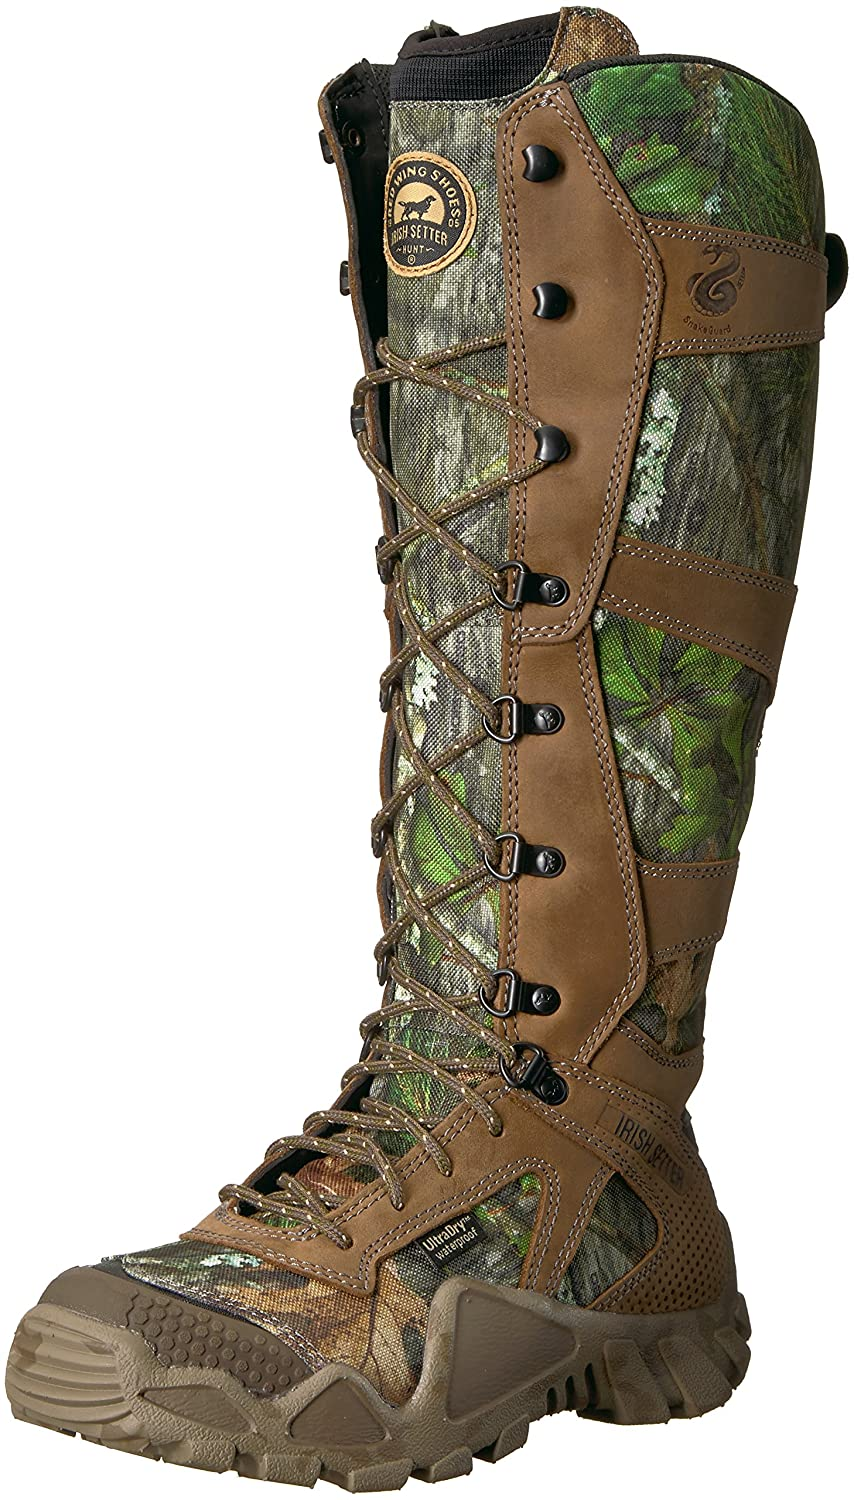 Irish Setter Women's Vaprtrek 1821 Knee High Boot B073HJC3M8 11 B(M) US|Mossy Oak Obsession Camouflage